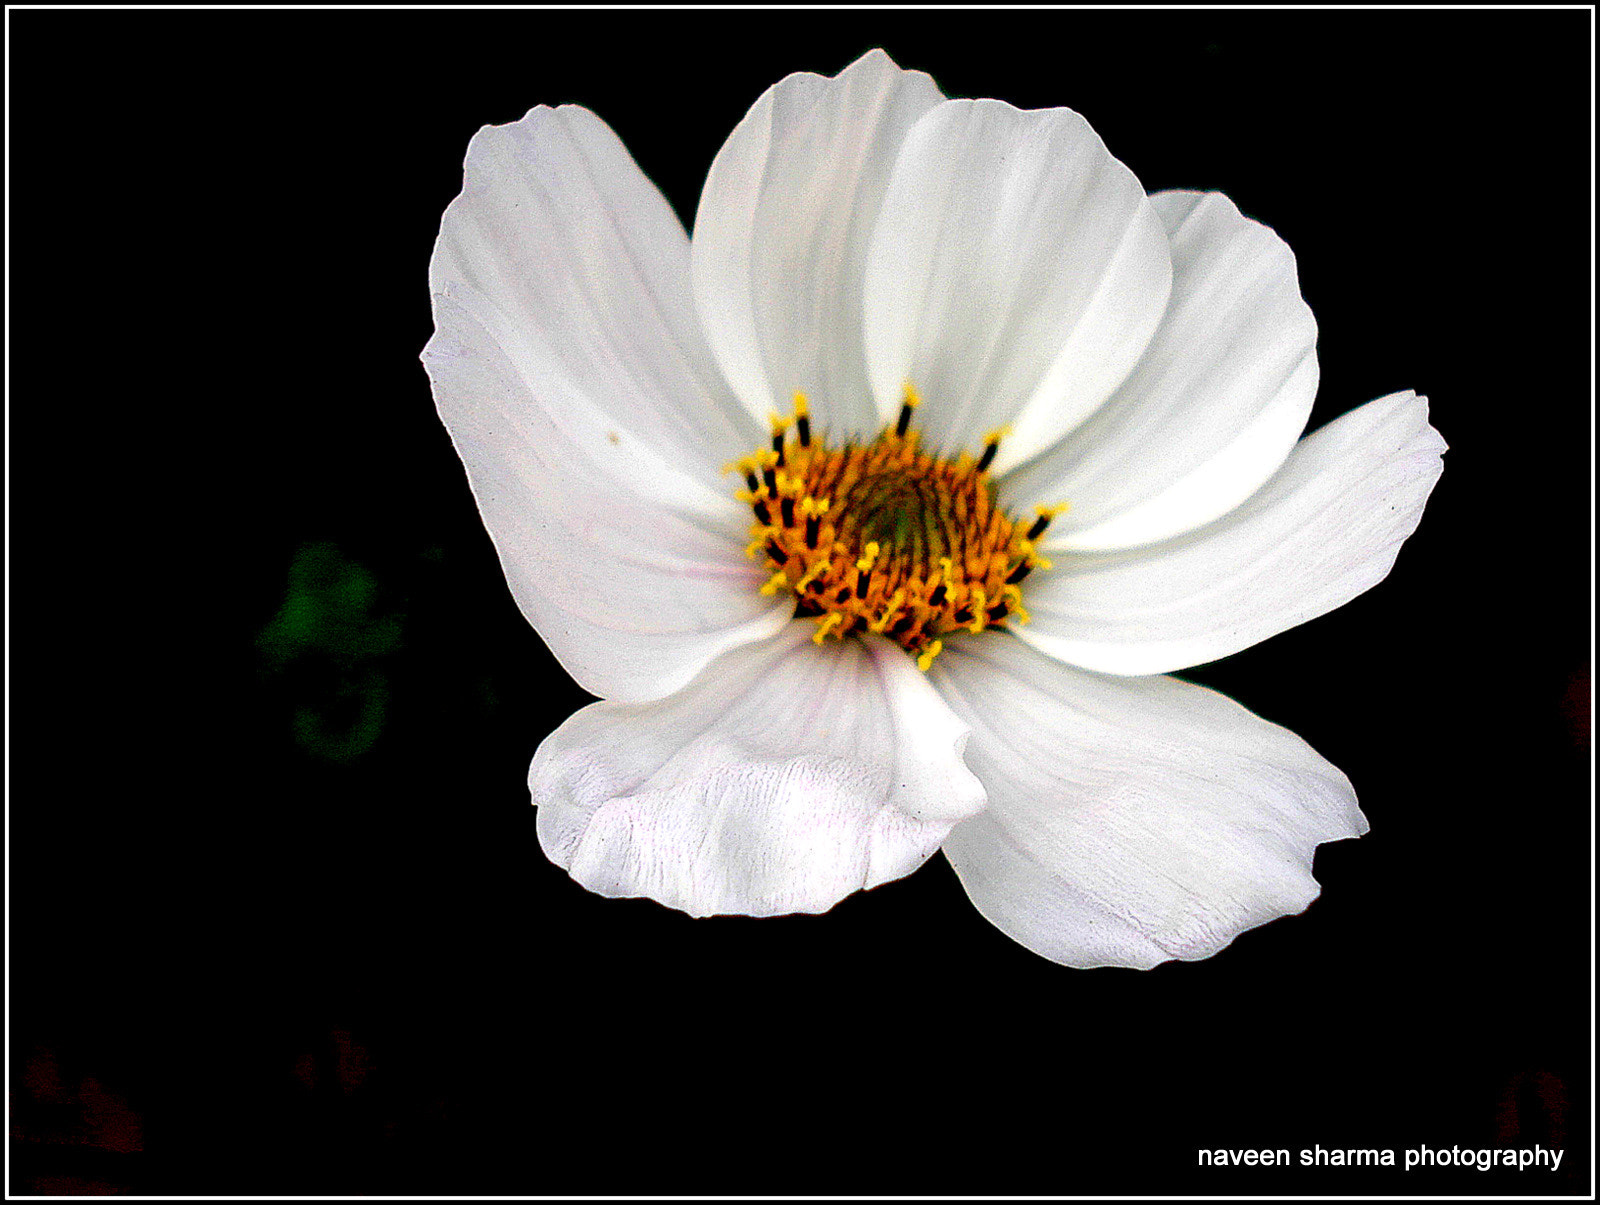 Photograph flower of the day by naveen sharma on 500px